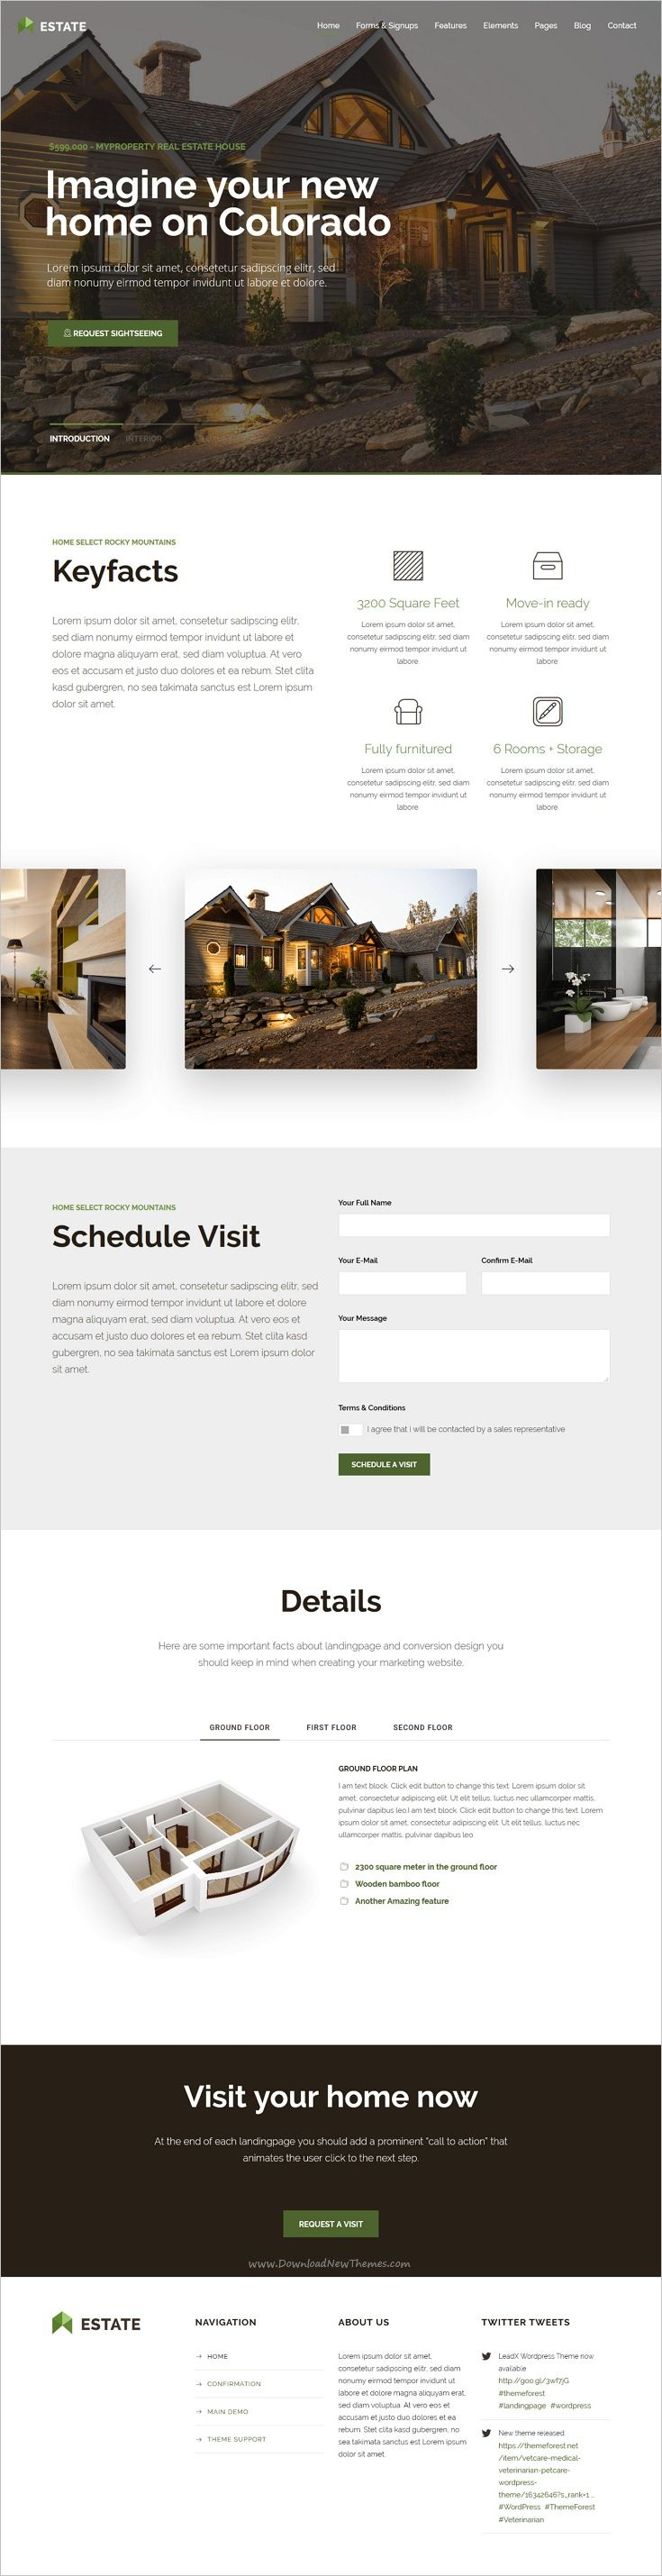 Leadx is a responsive #WordPress template for #property #realestate Lead Marketing Landing Page website download now➩ https://themeforest.net/item/leadx-landing-page-marketing-wordpress-theme/17840700?ref=Datasata